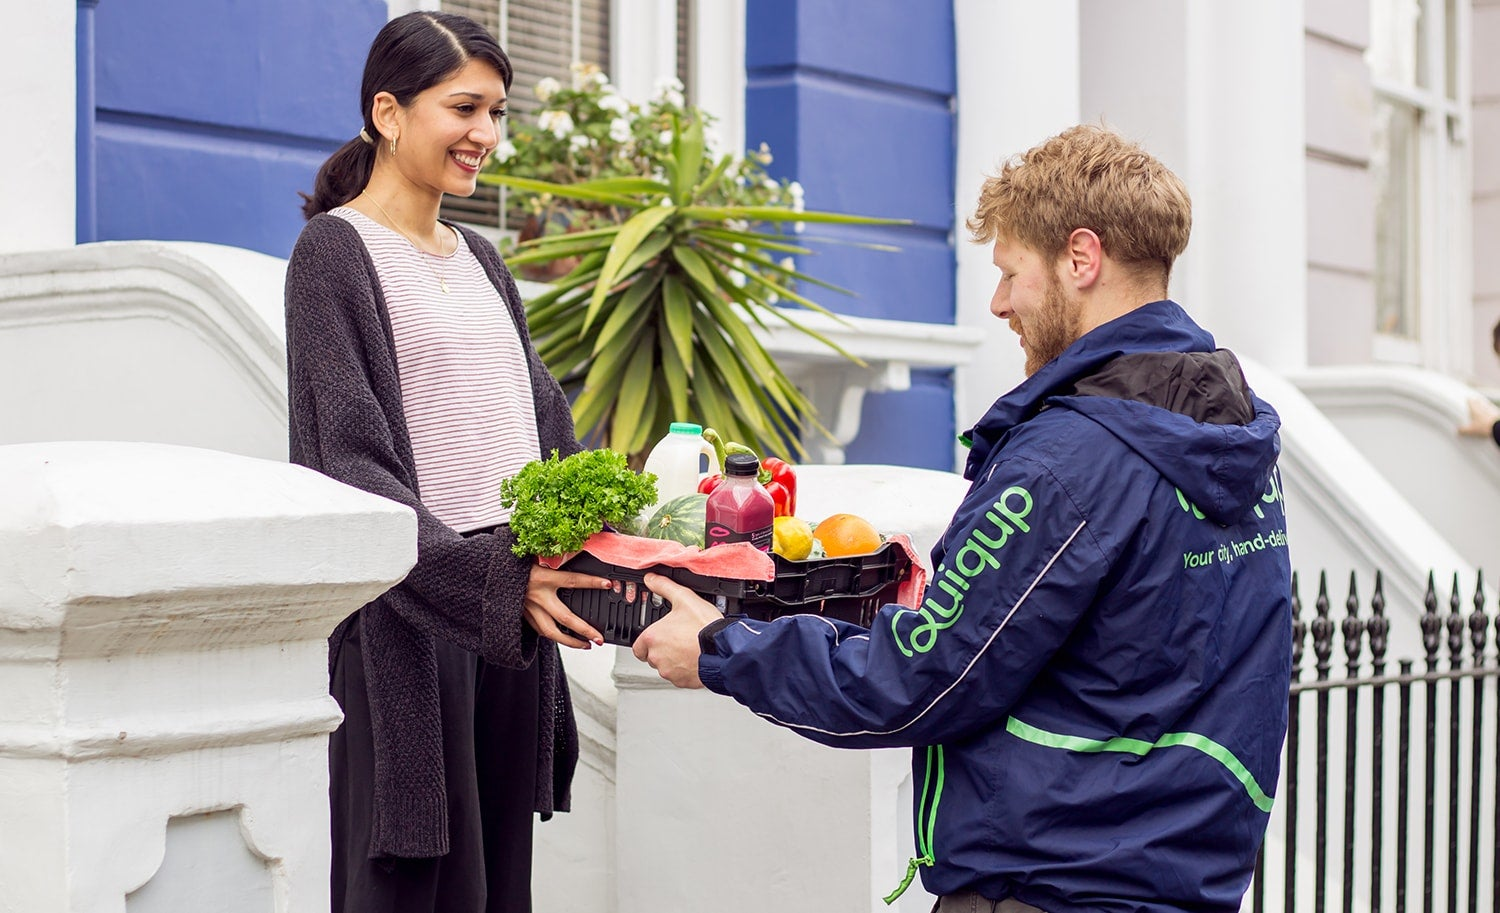 Start-up Quiqup delivers groceries and ingredients